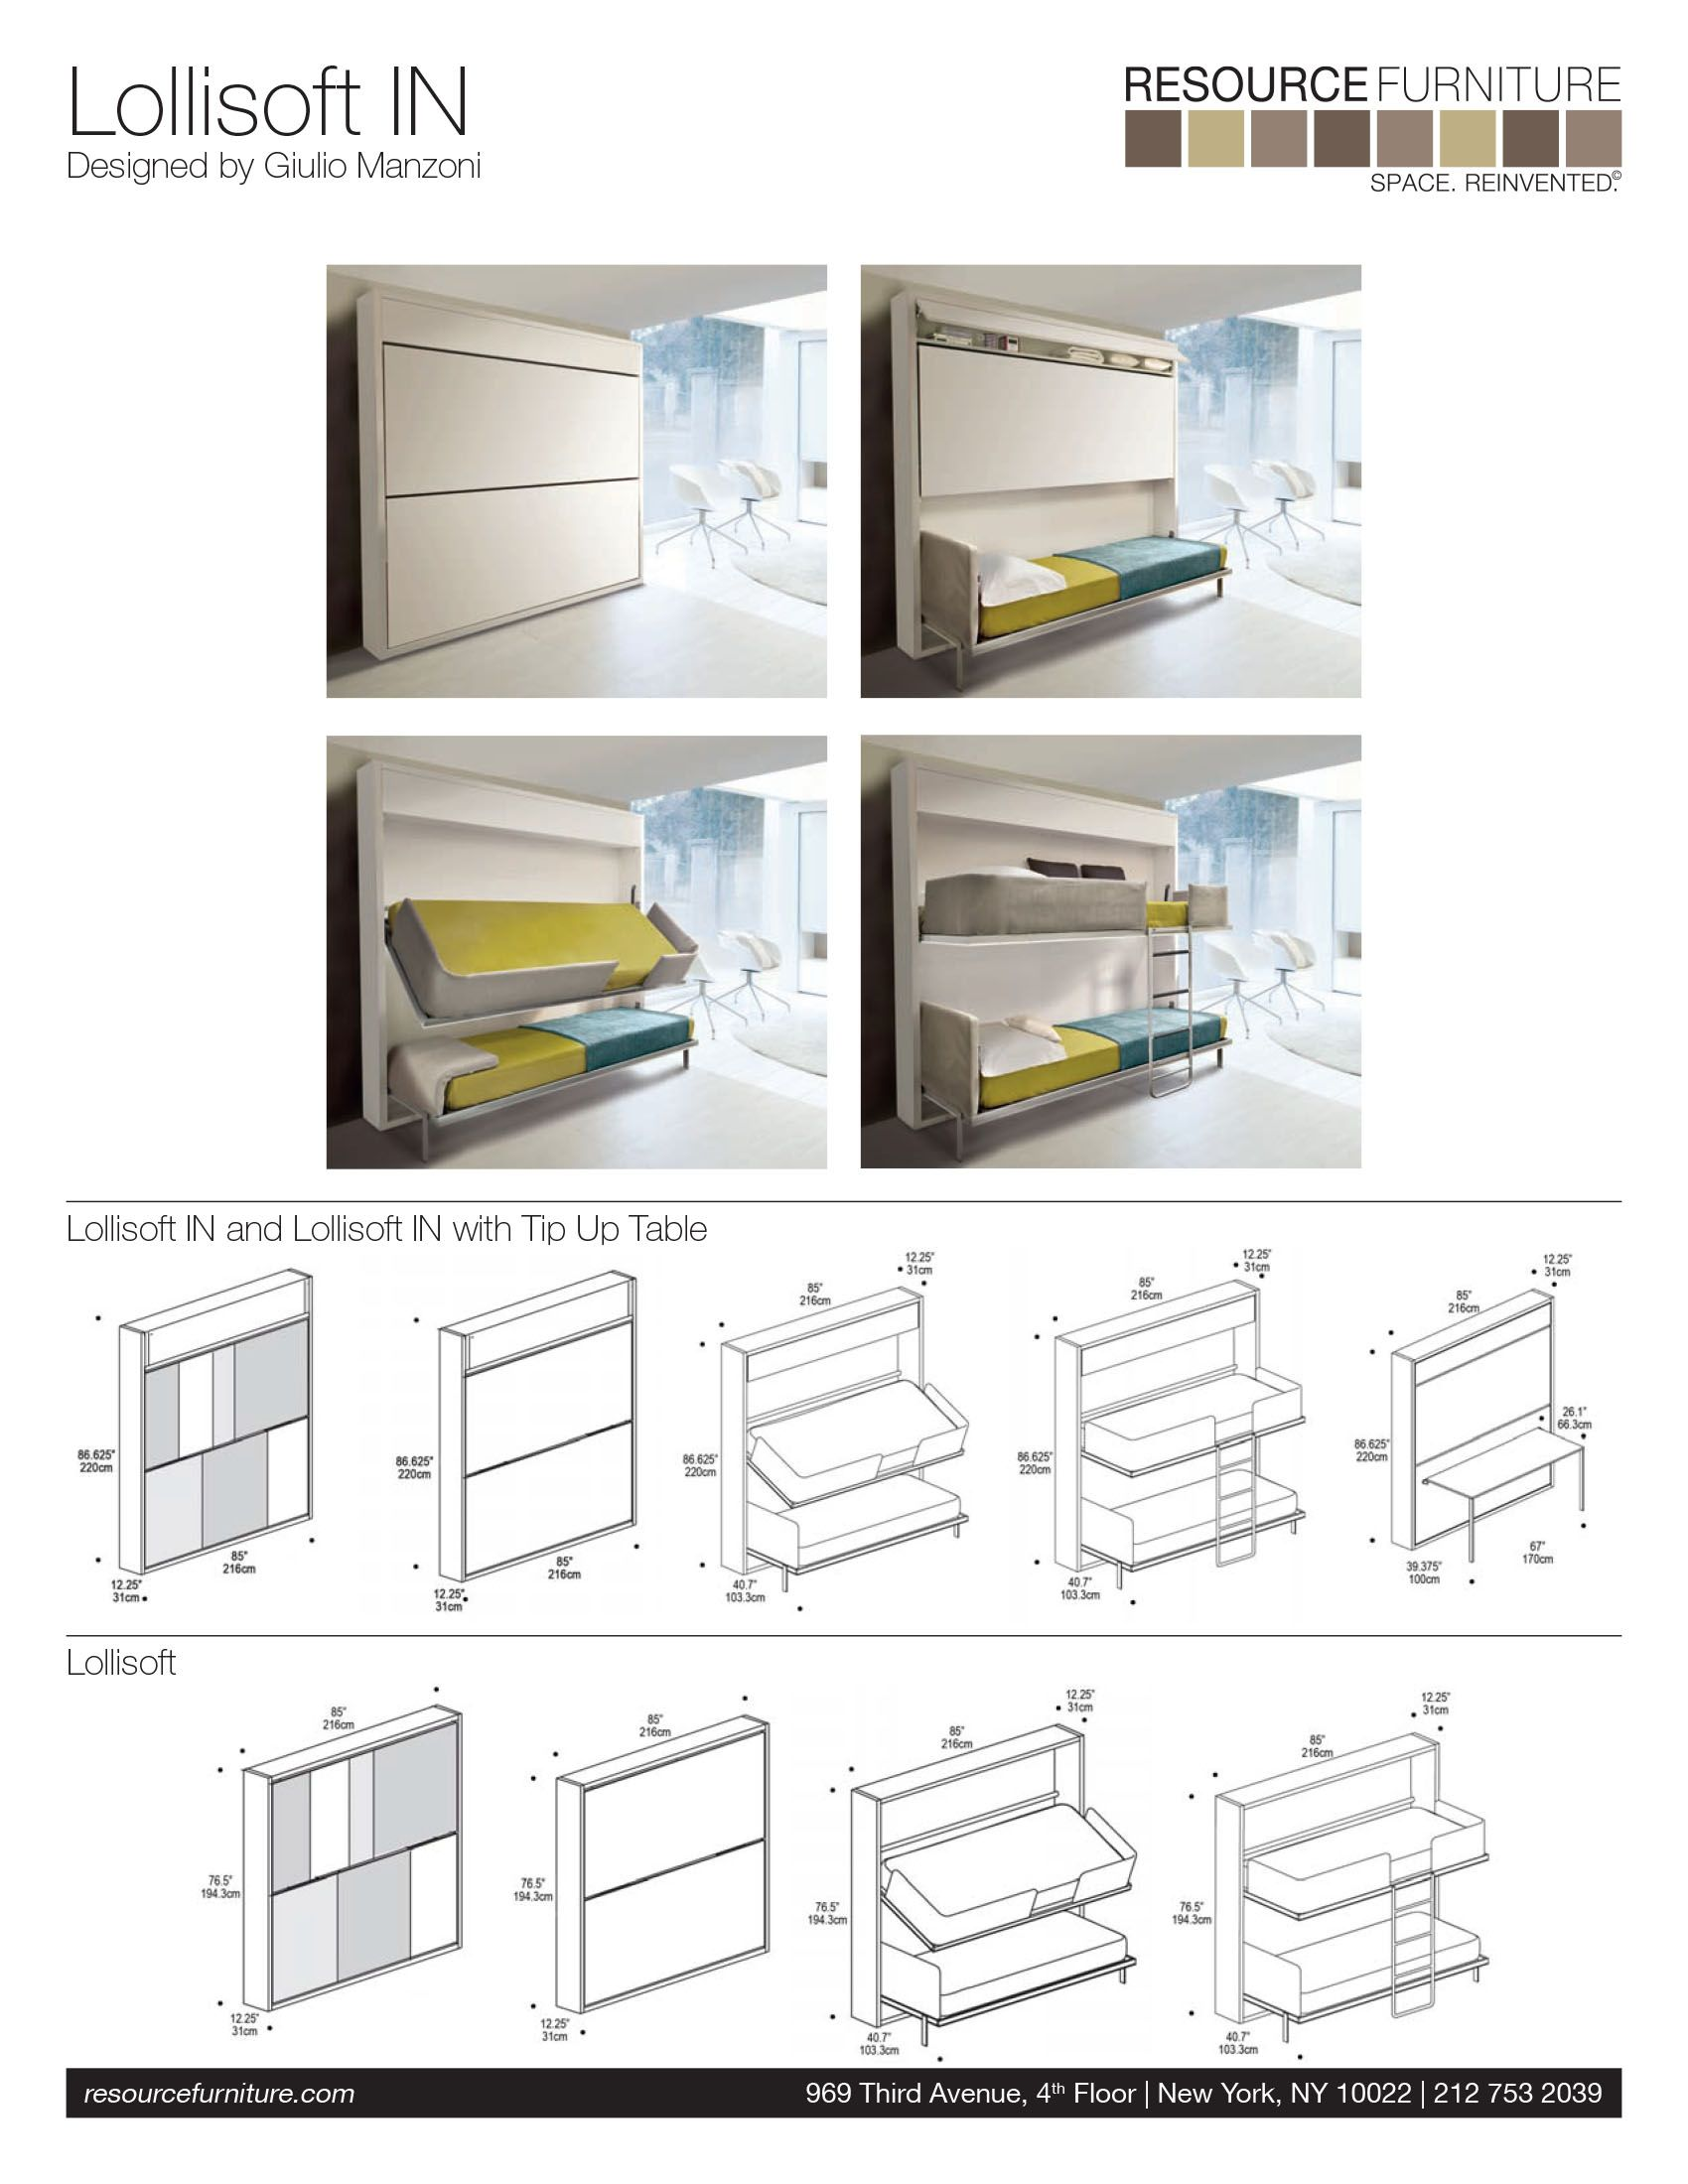 The Lollisoft IN is a twin size bunk bed with upper soft